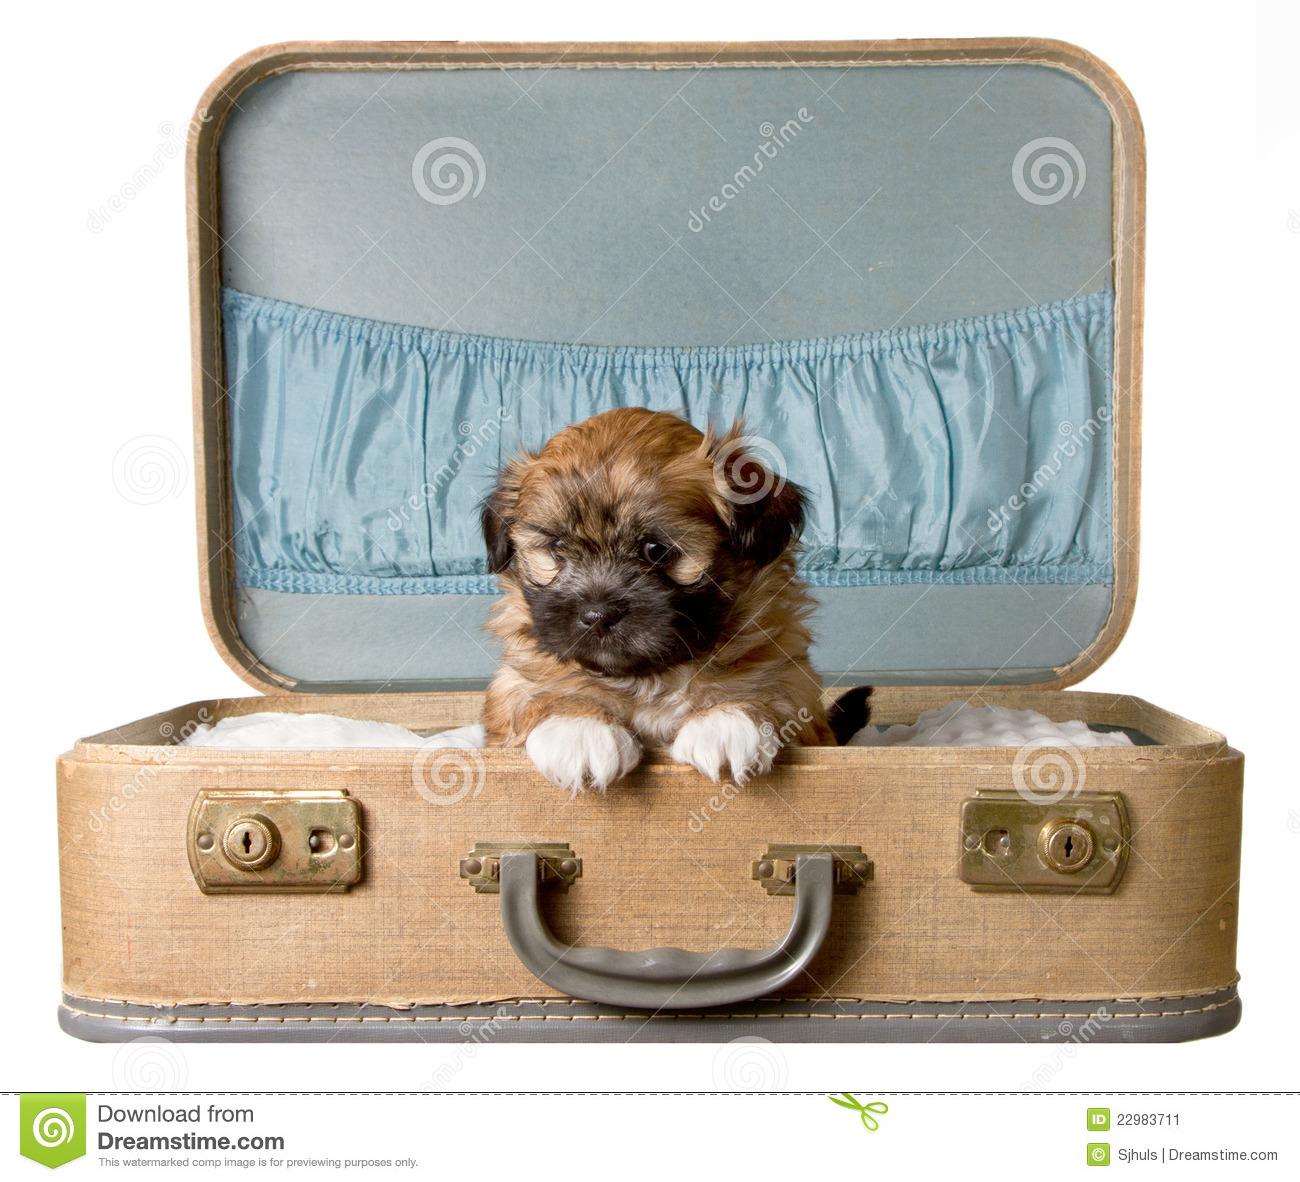 Cute puppy in a vintage suitcase stock image image 22983711 for What to do with vintage suitcases